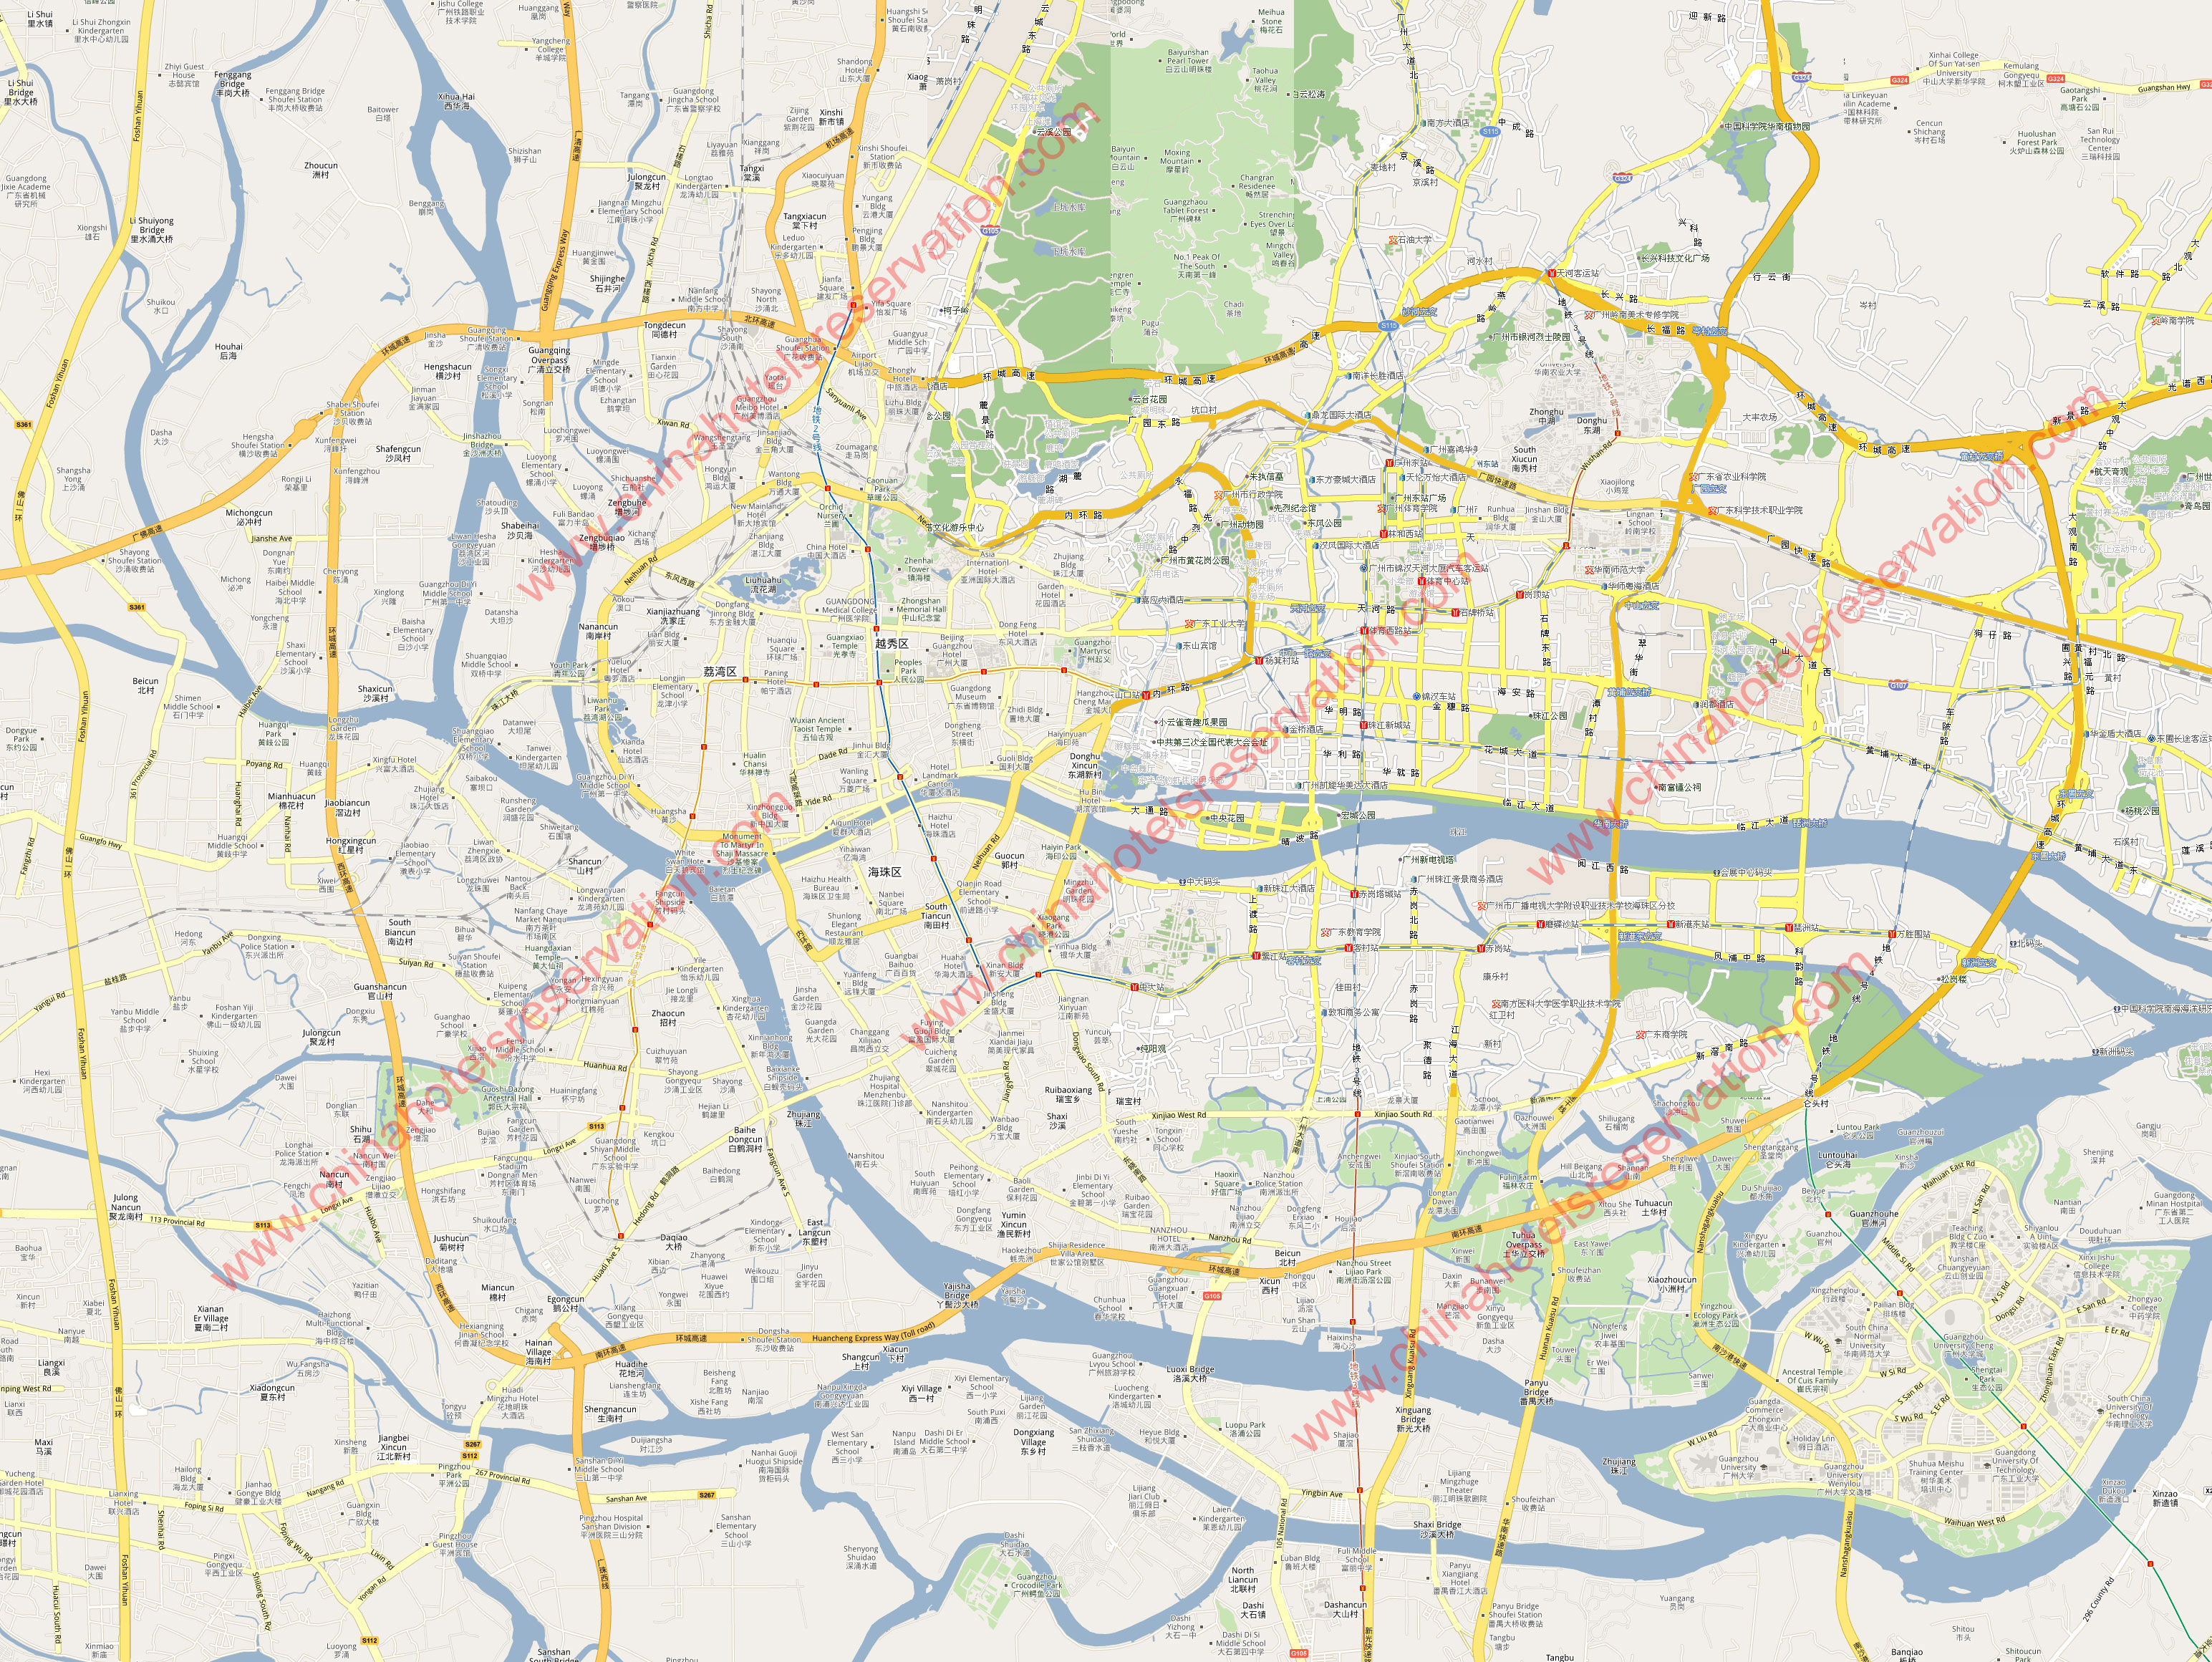 City street map of guangzhou hotels linkable on the map guangzhou here for guangzhou full mapfull canton map gumiabroncs Image collections